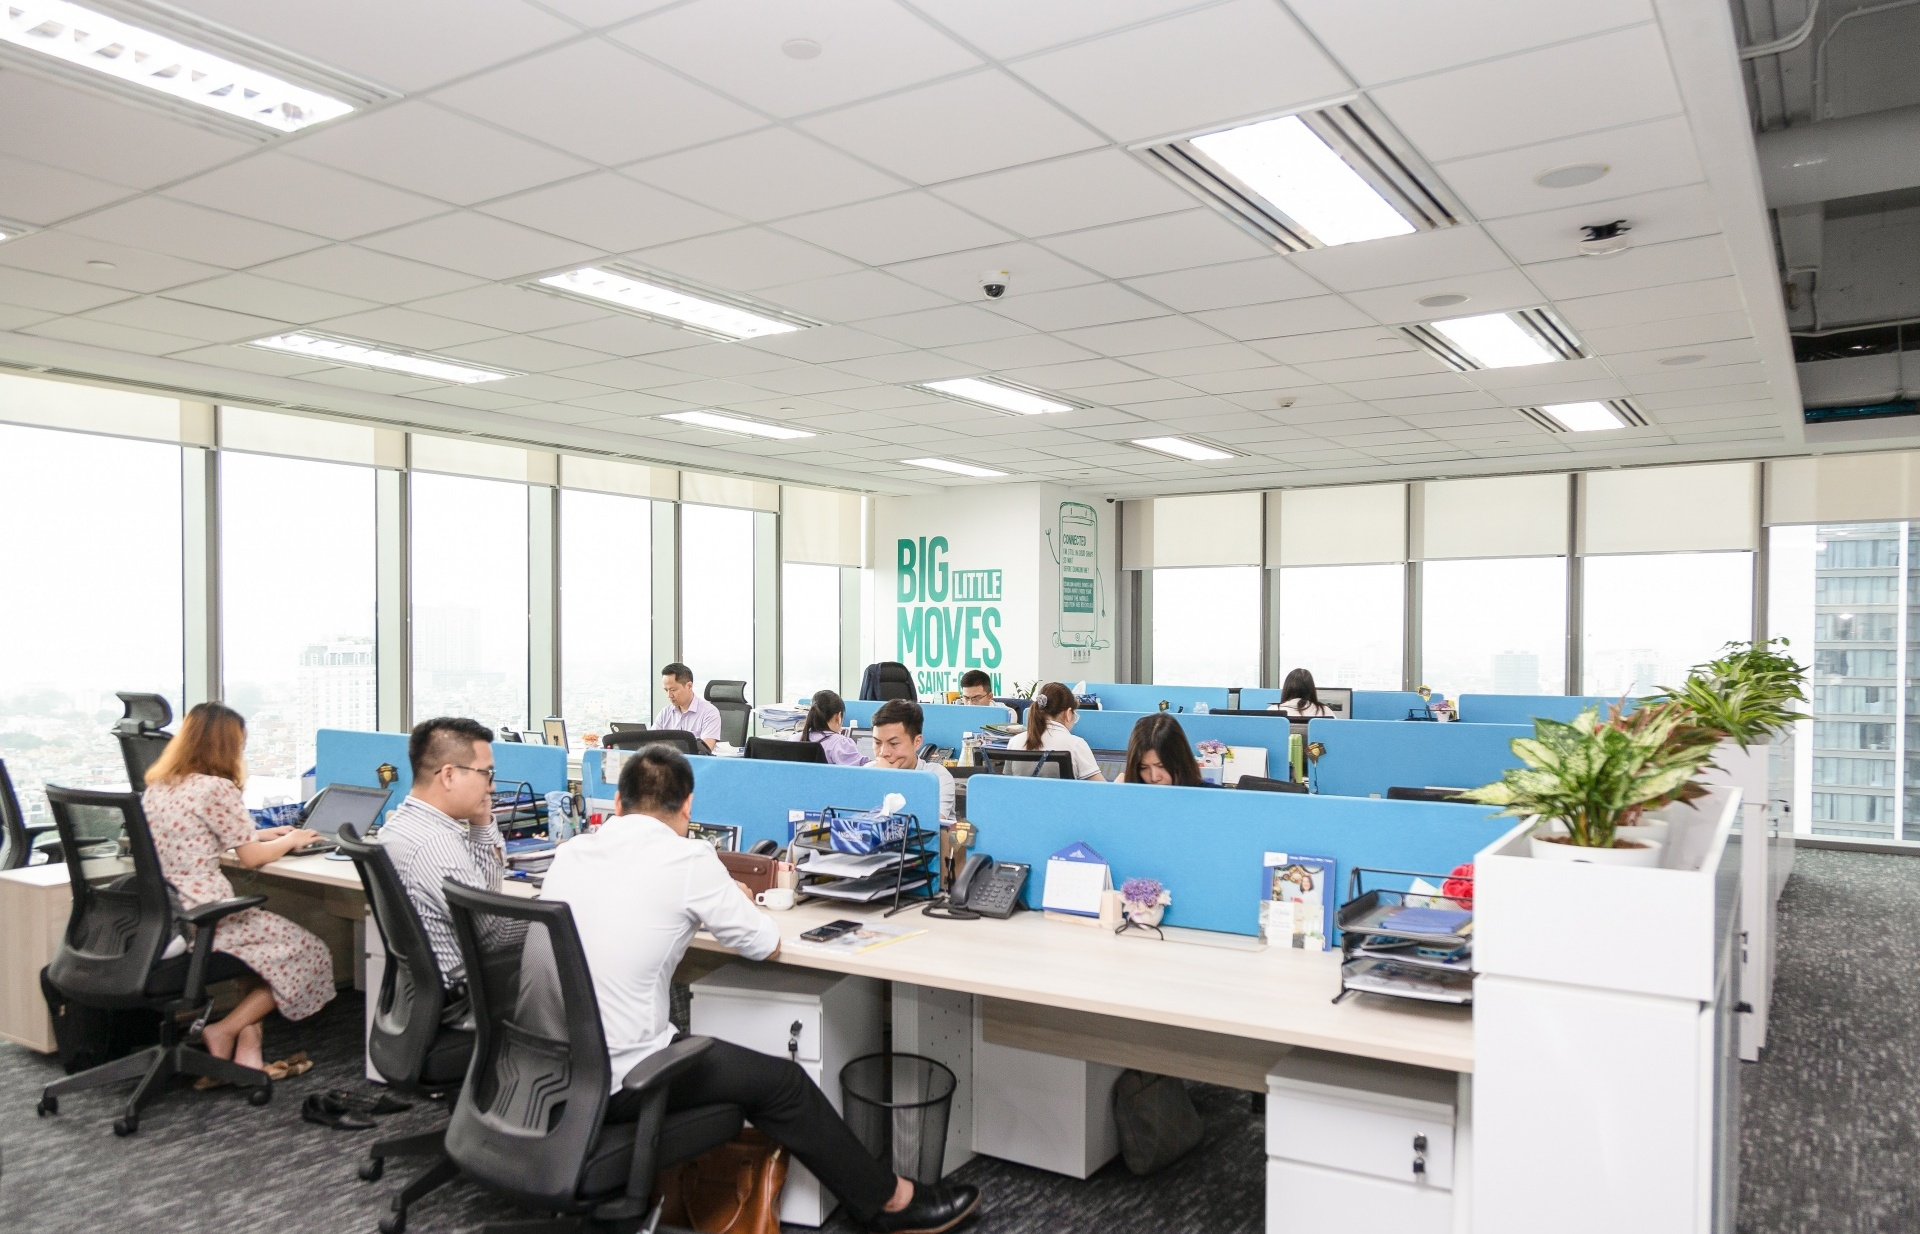 Saint-Gobain Vietnam's office confirms coveted Green Construction LOTUS Gold